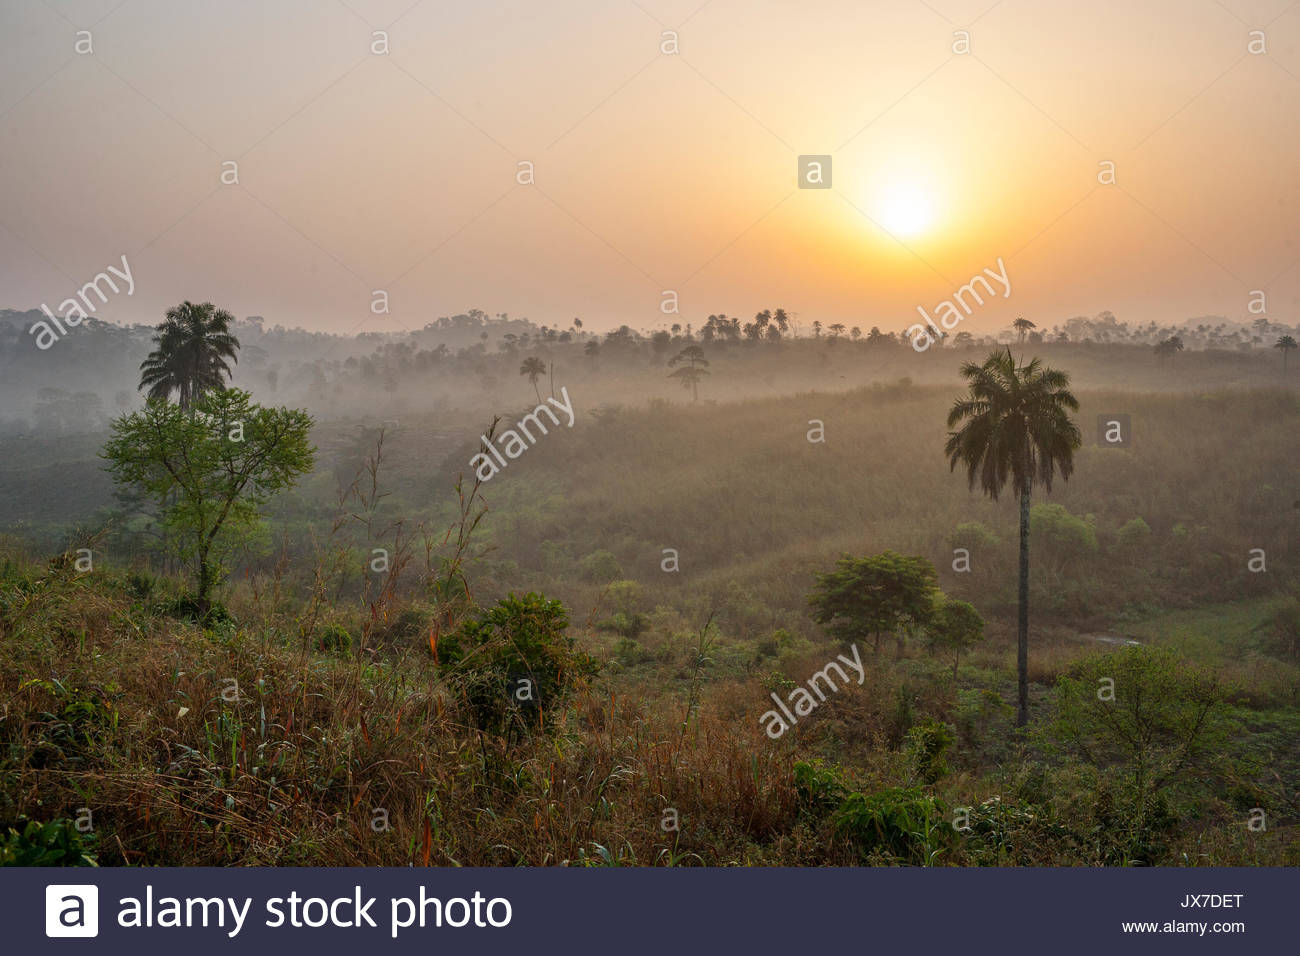 A sunrise scenic along the road leading to Meliandou from Gueckadou. - Stock Image